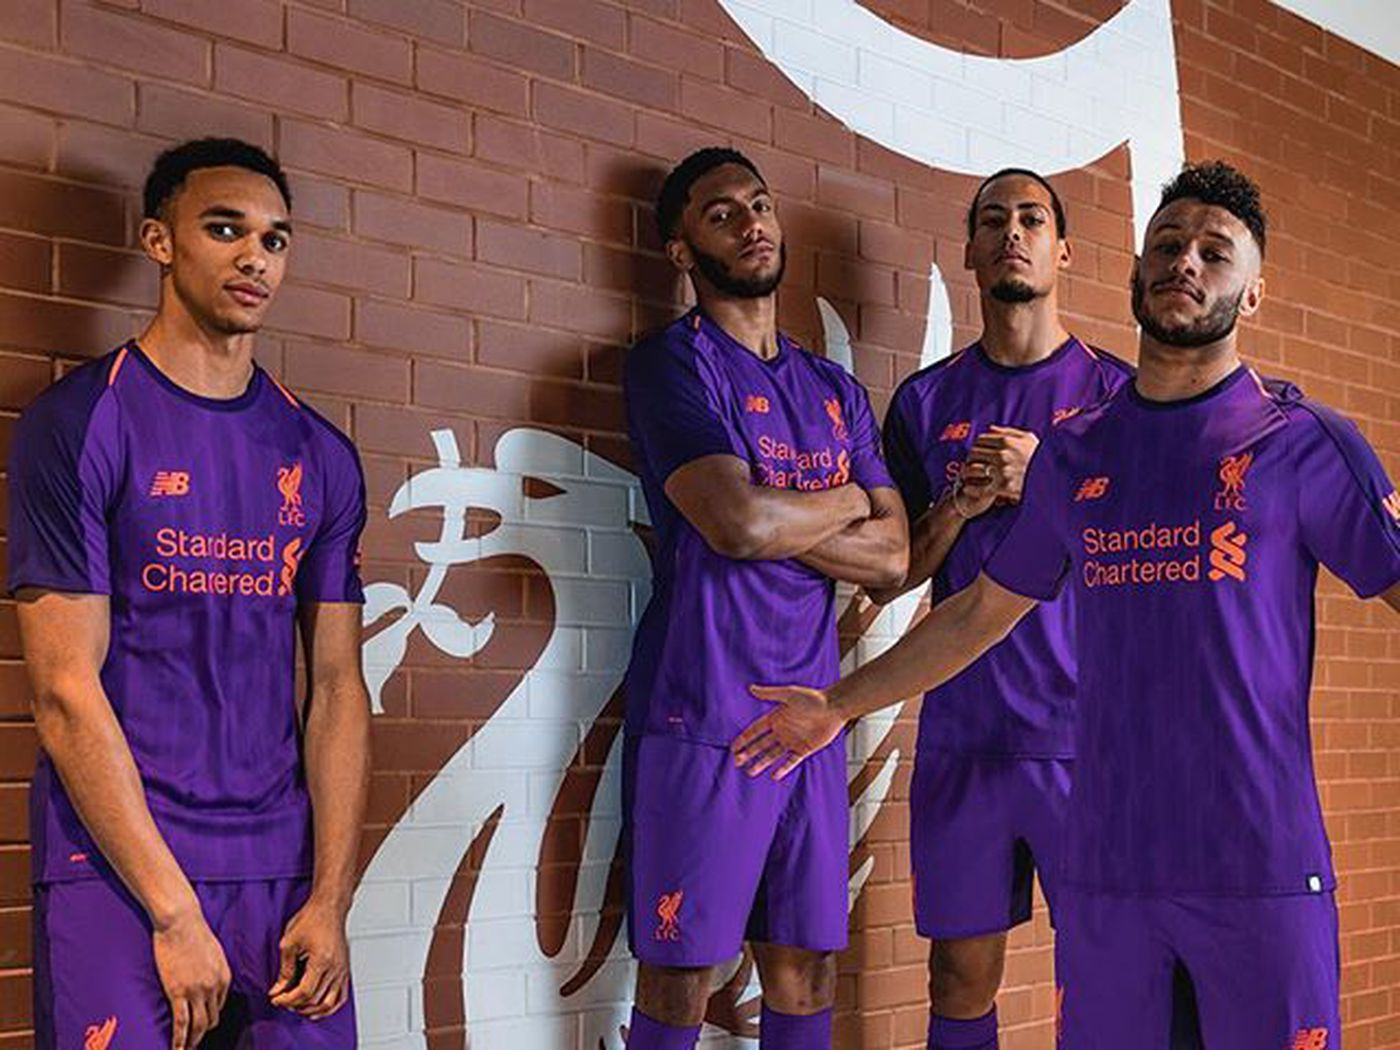 f0579a7eddc Purple Is The New Orange  Liverpool Release 18 19 Away Kit - The Liverpool  Offside